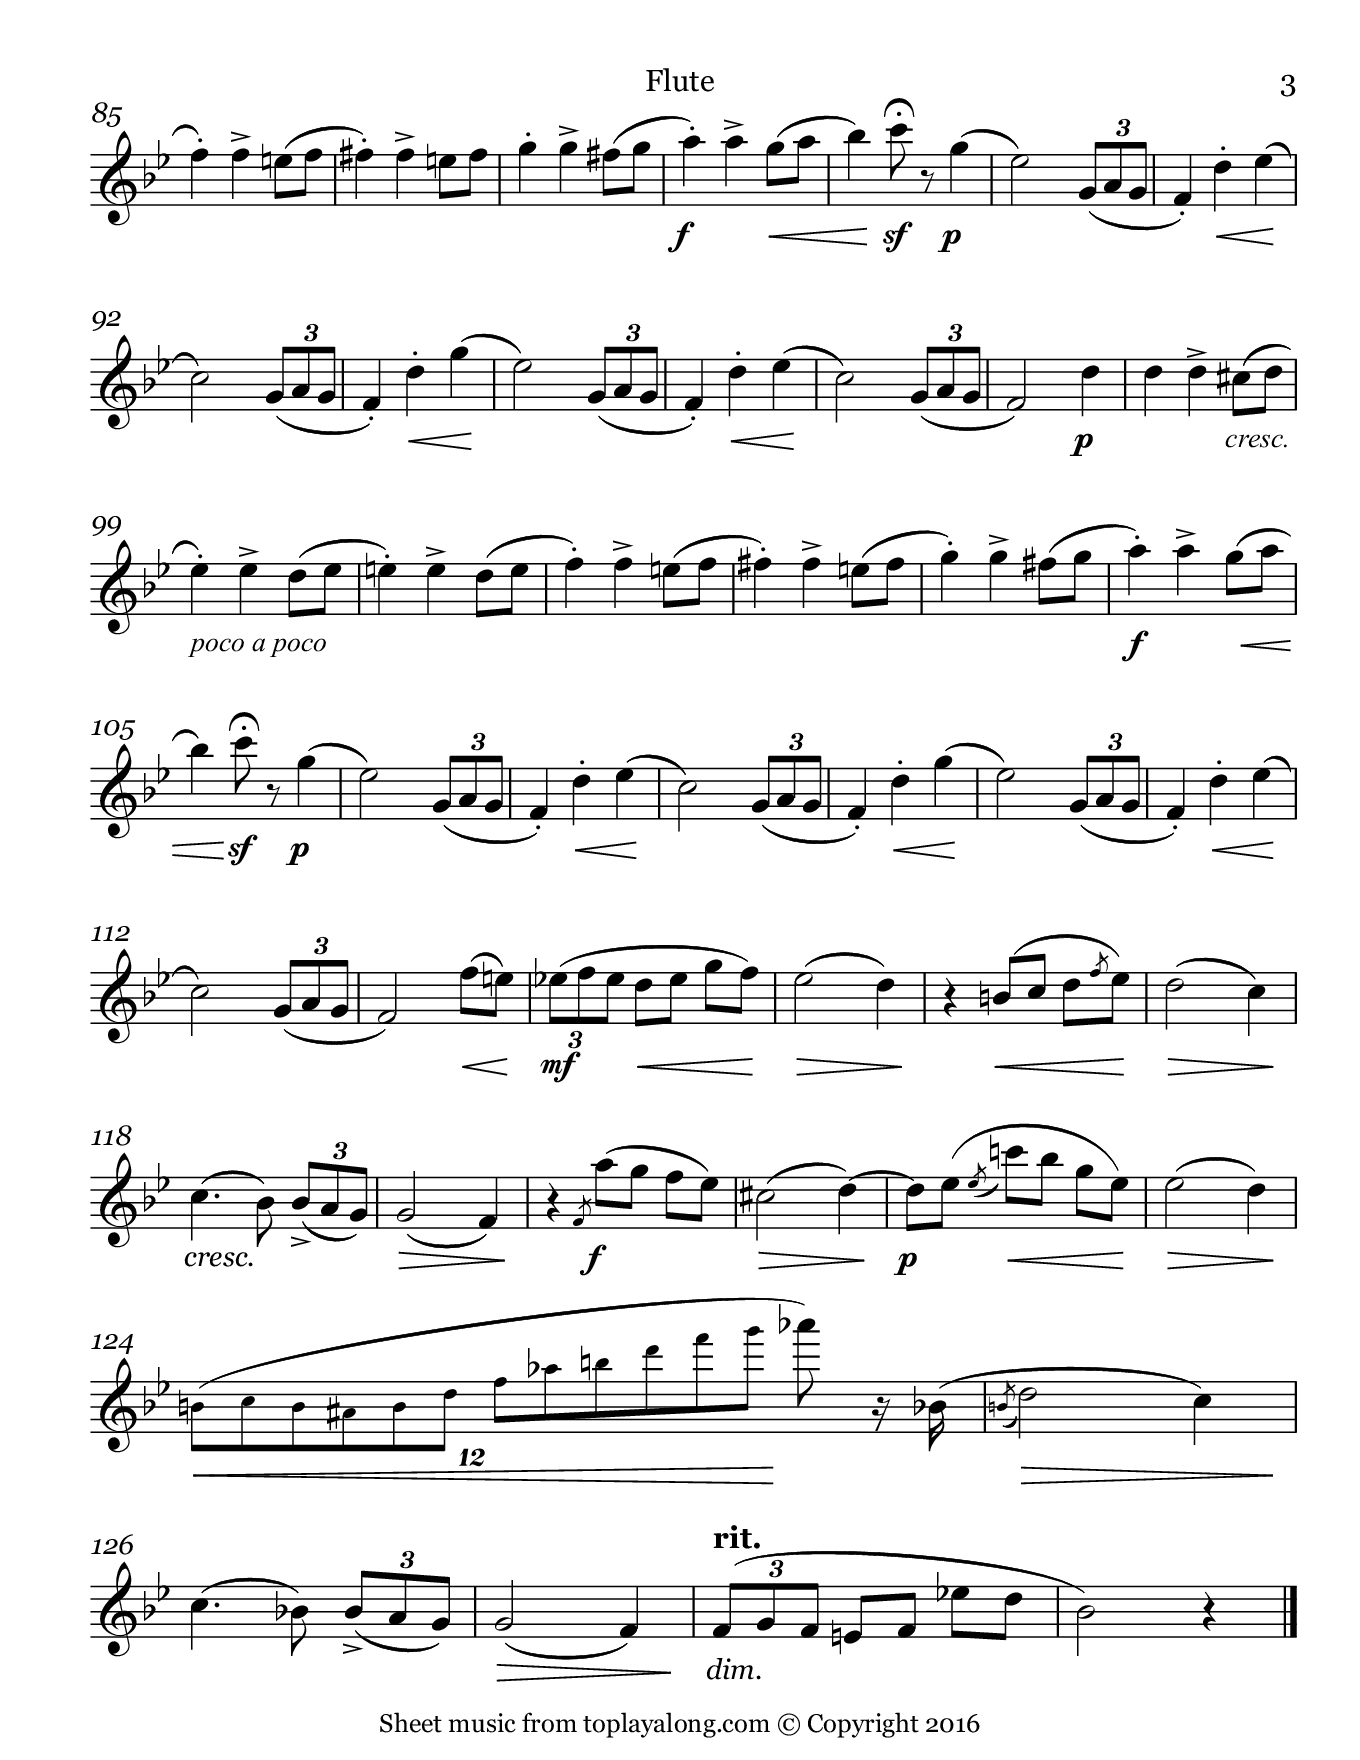 L'adieu Waltz Op. 69 No. 1 by Chopin. Sheet music for Flute, page 3.